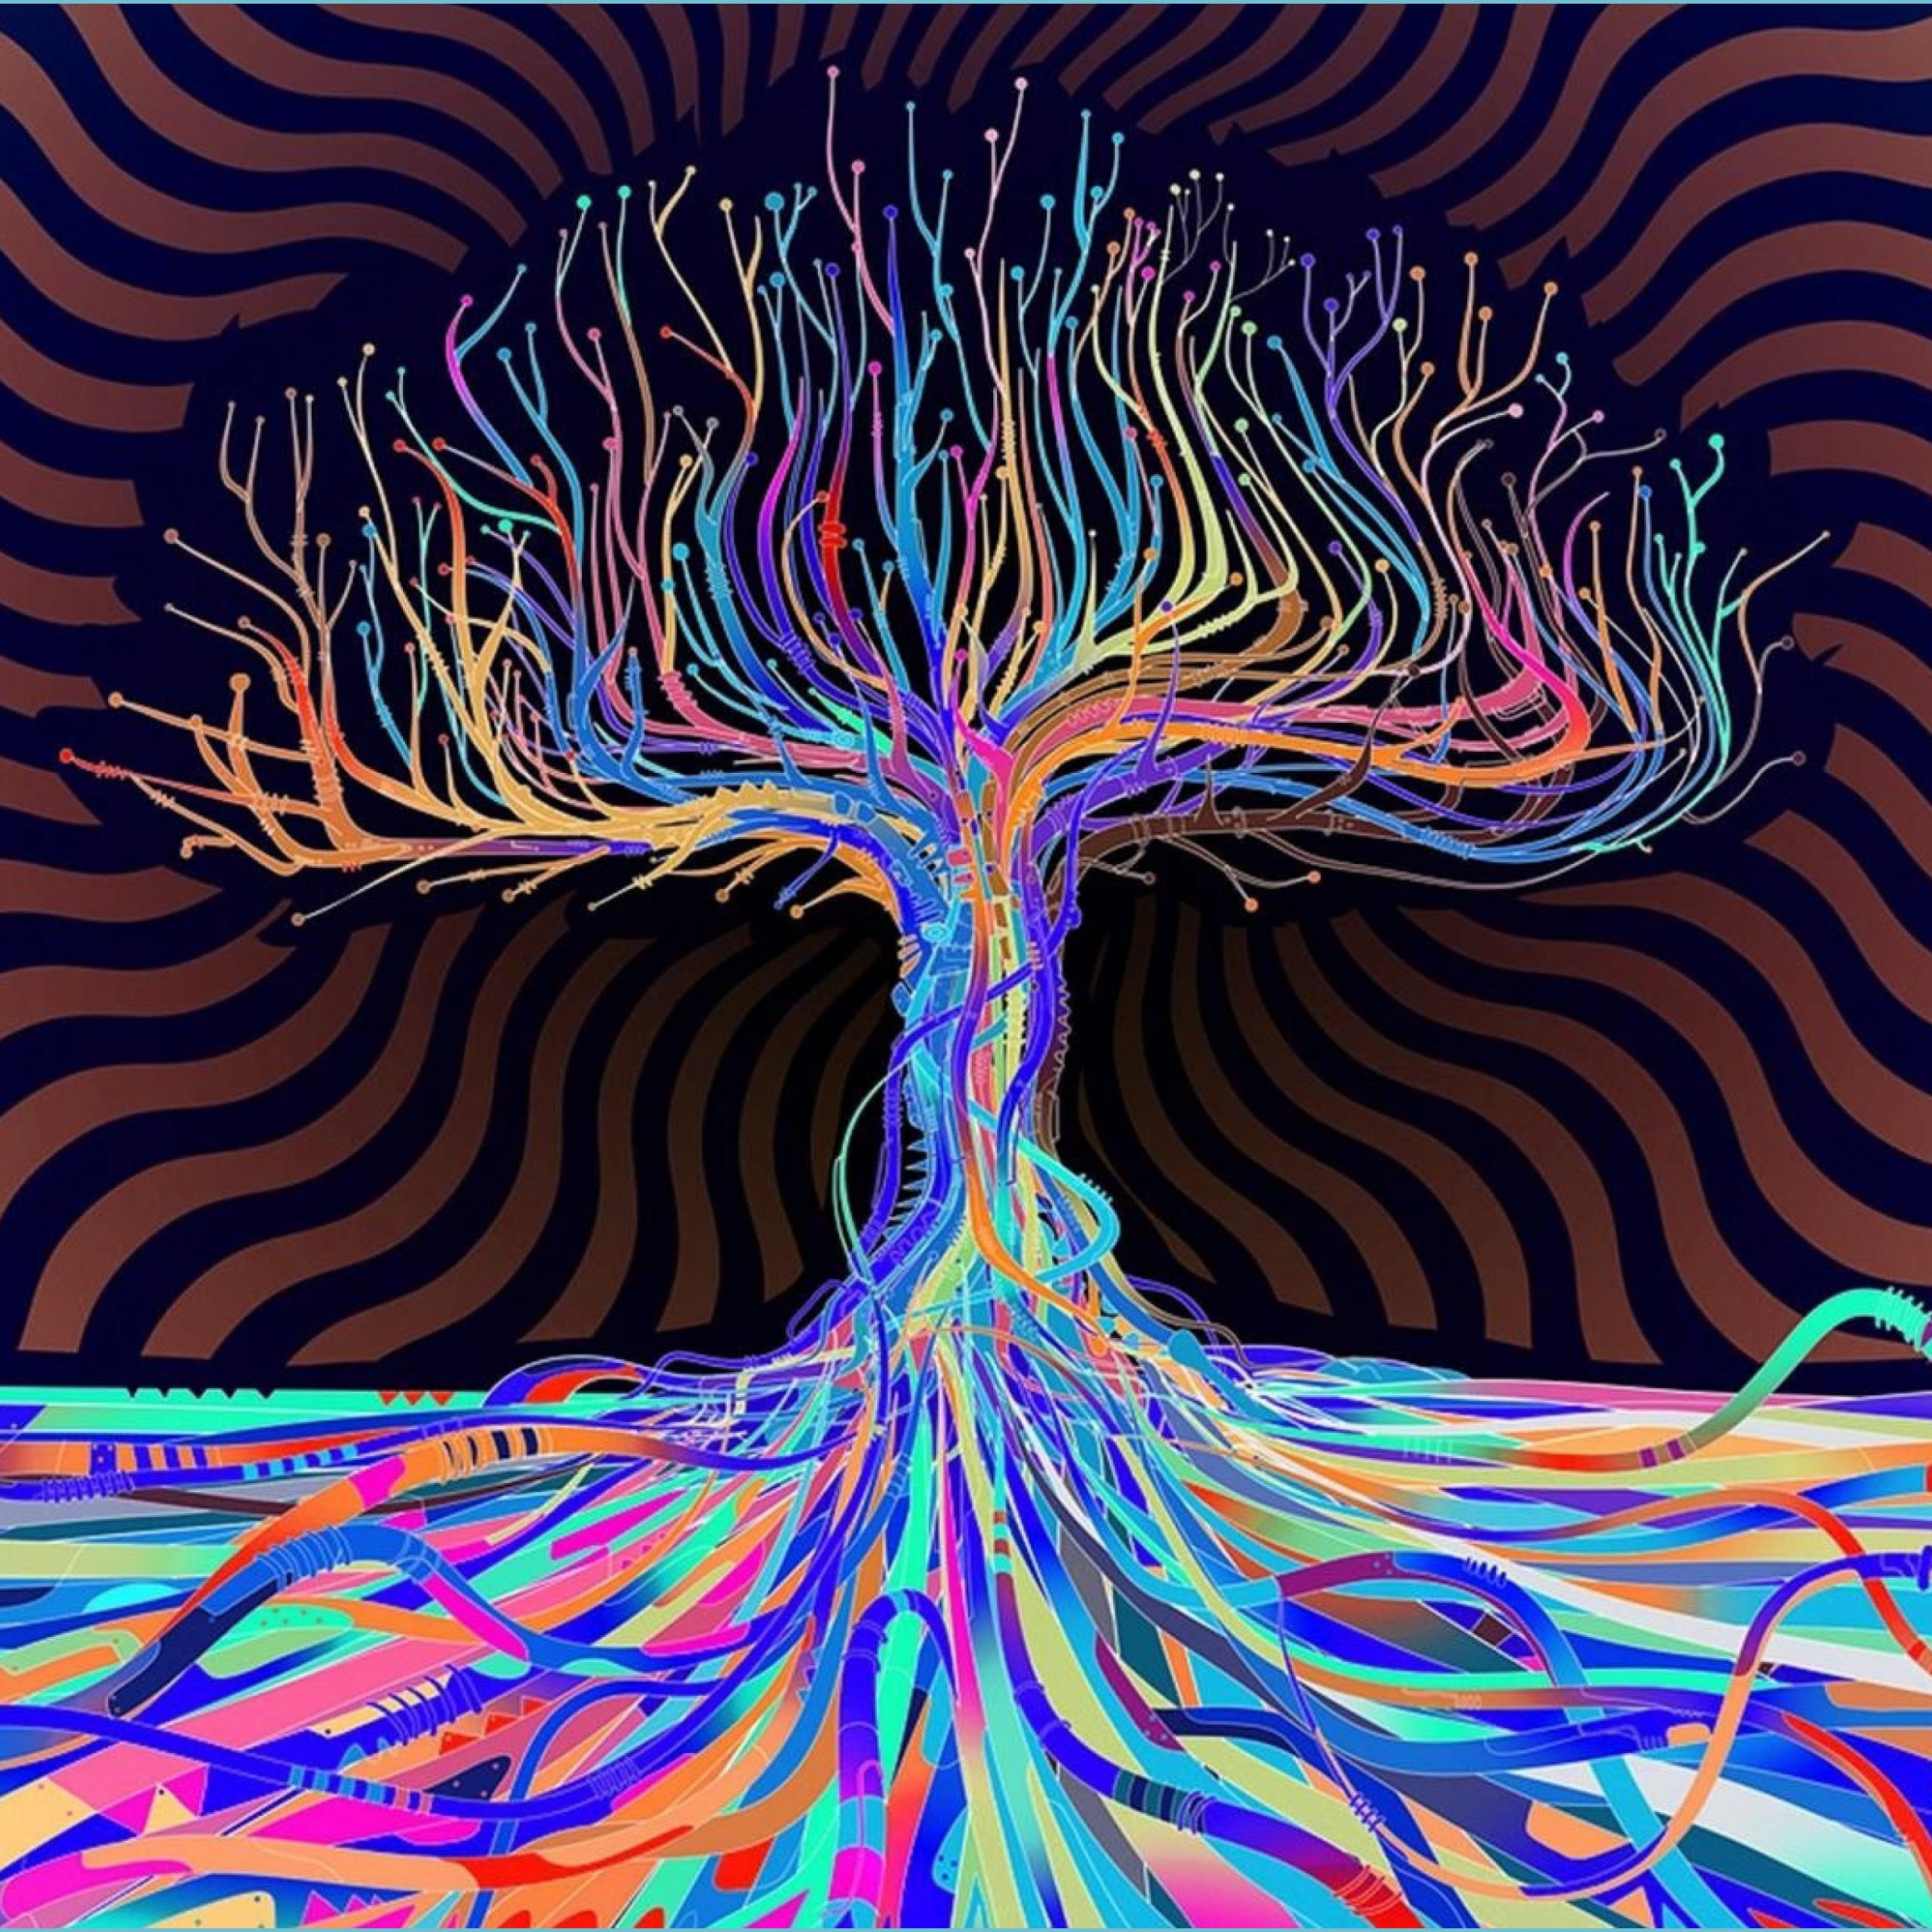 psychedelic hd 12k wallpapers top free psychedelic hd 12k trippy wallpapers 4k